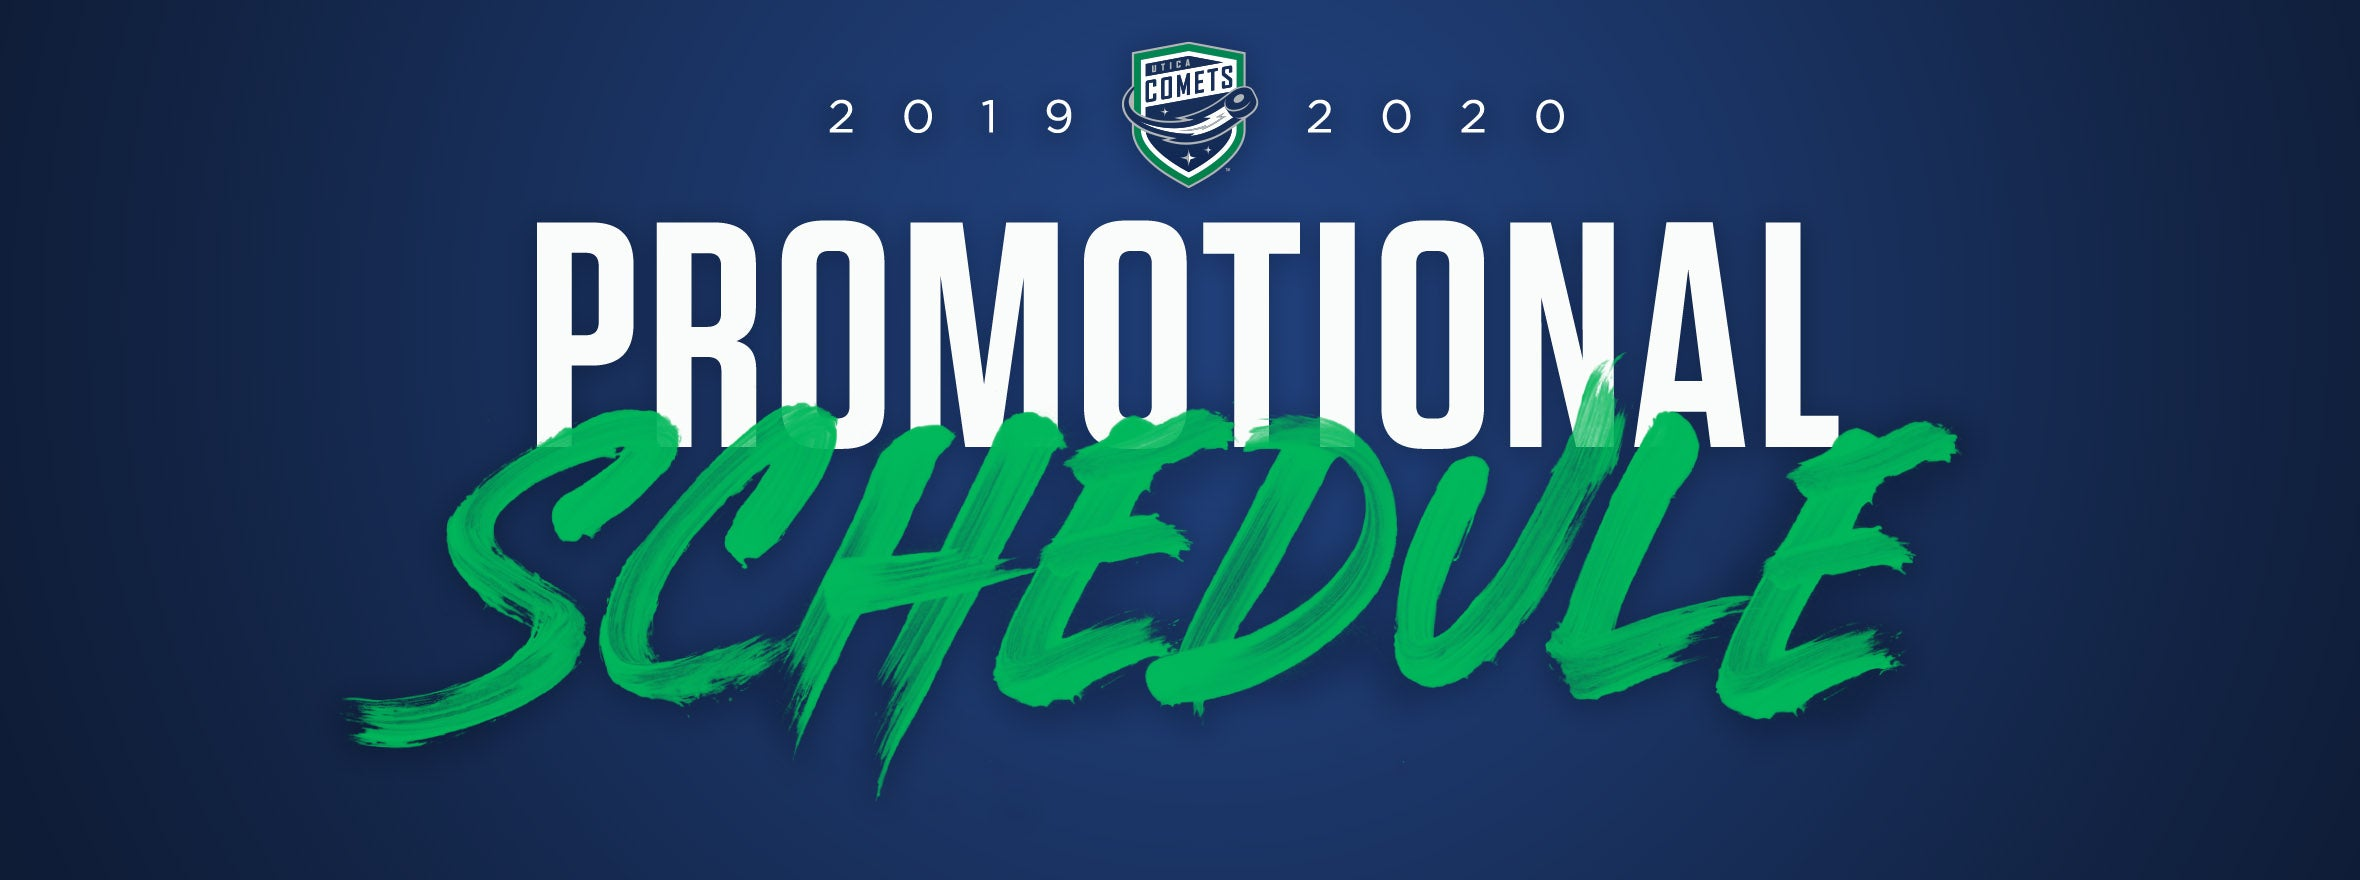 2019-20 PROMOTIONAL SCHEDULE